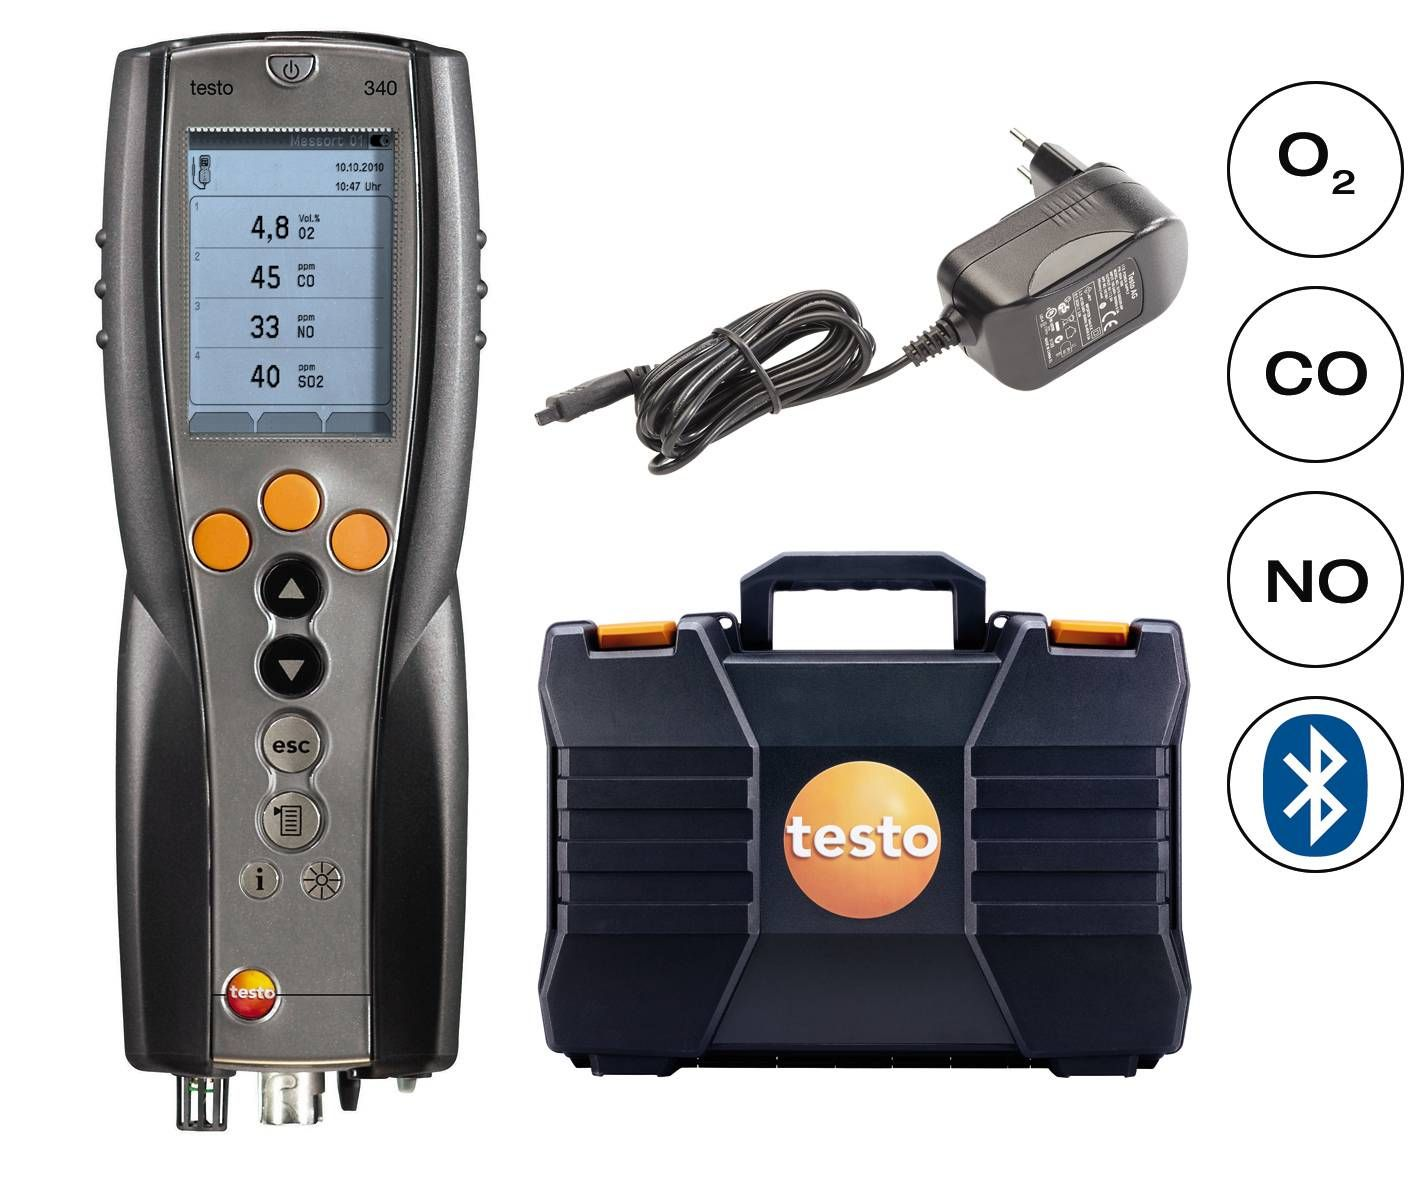 Testo 340 Basic Combustion Kit Image.jpg